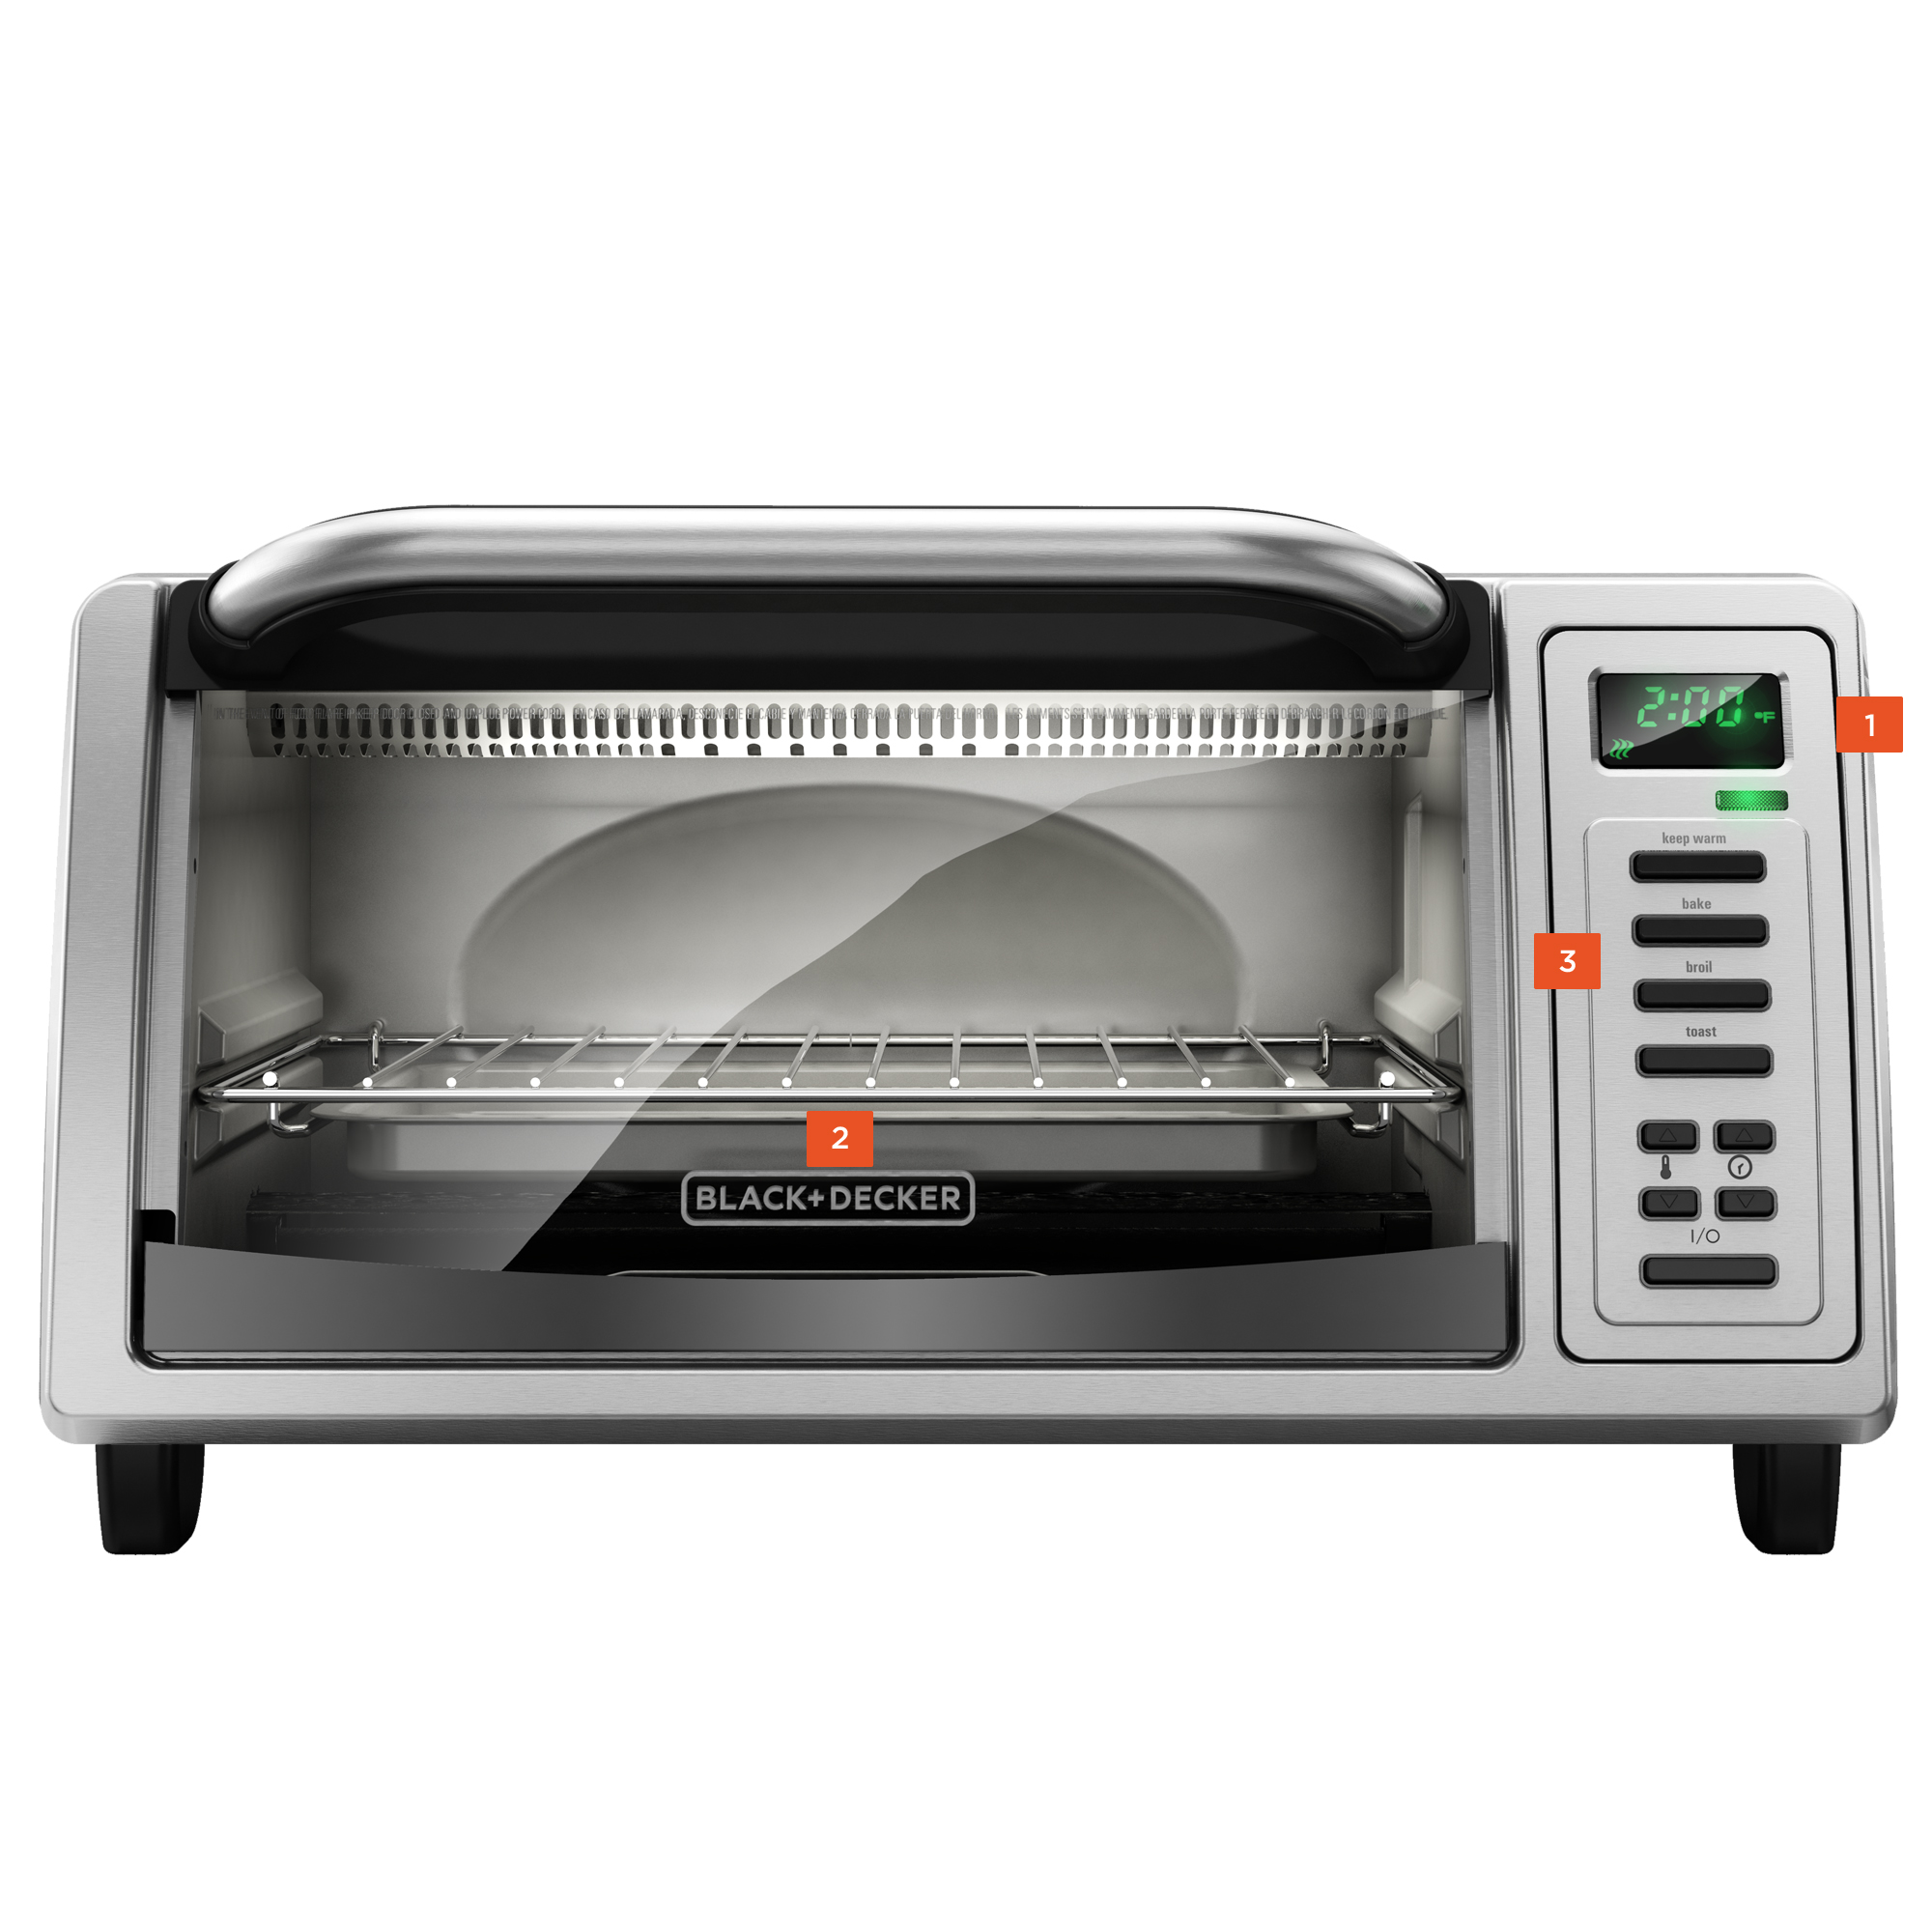 TO1380SS.ashx?h=500&la=en&mh=500&mw=527&w=500 convection and toaster ovens cooking appliances black decker  at reclaimingppi.co